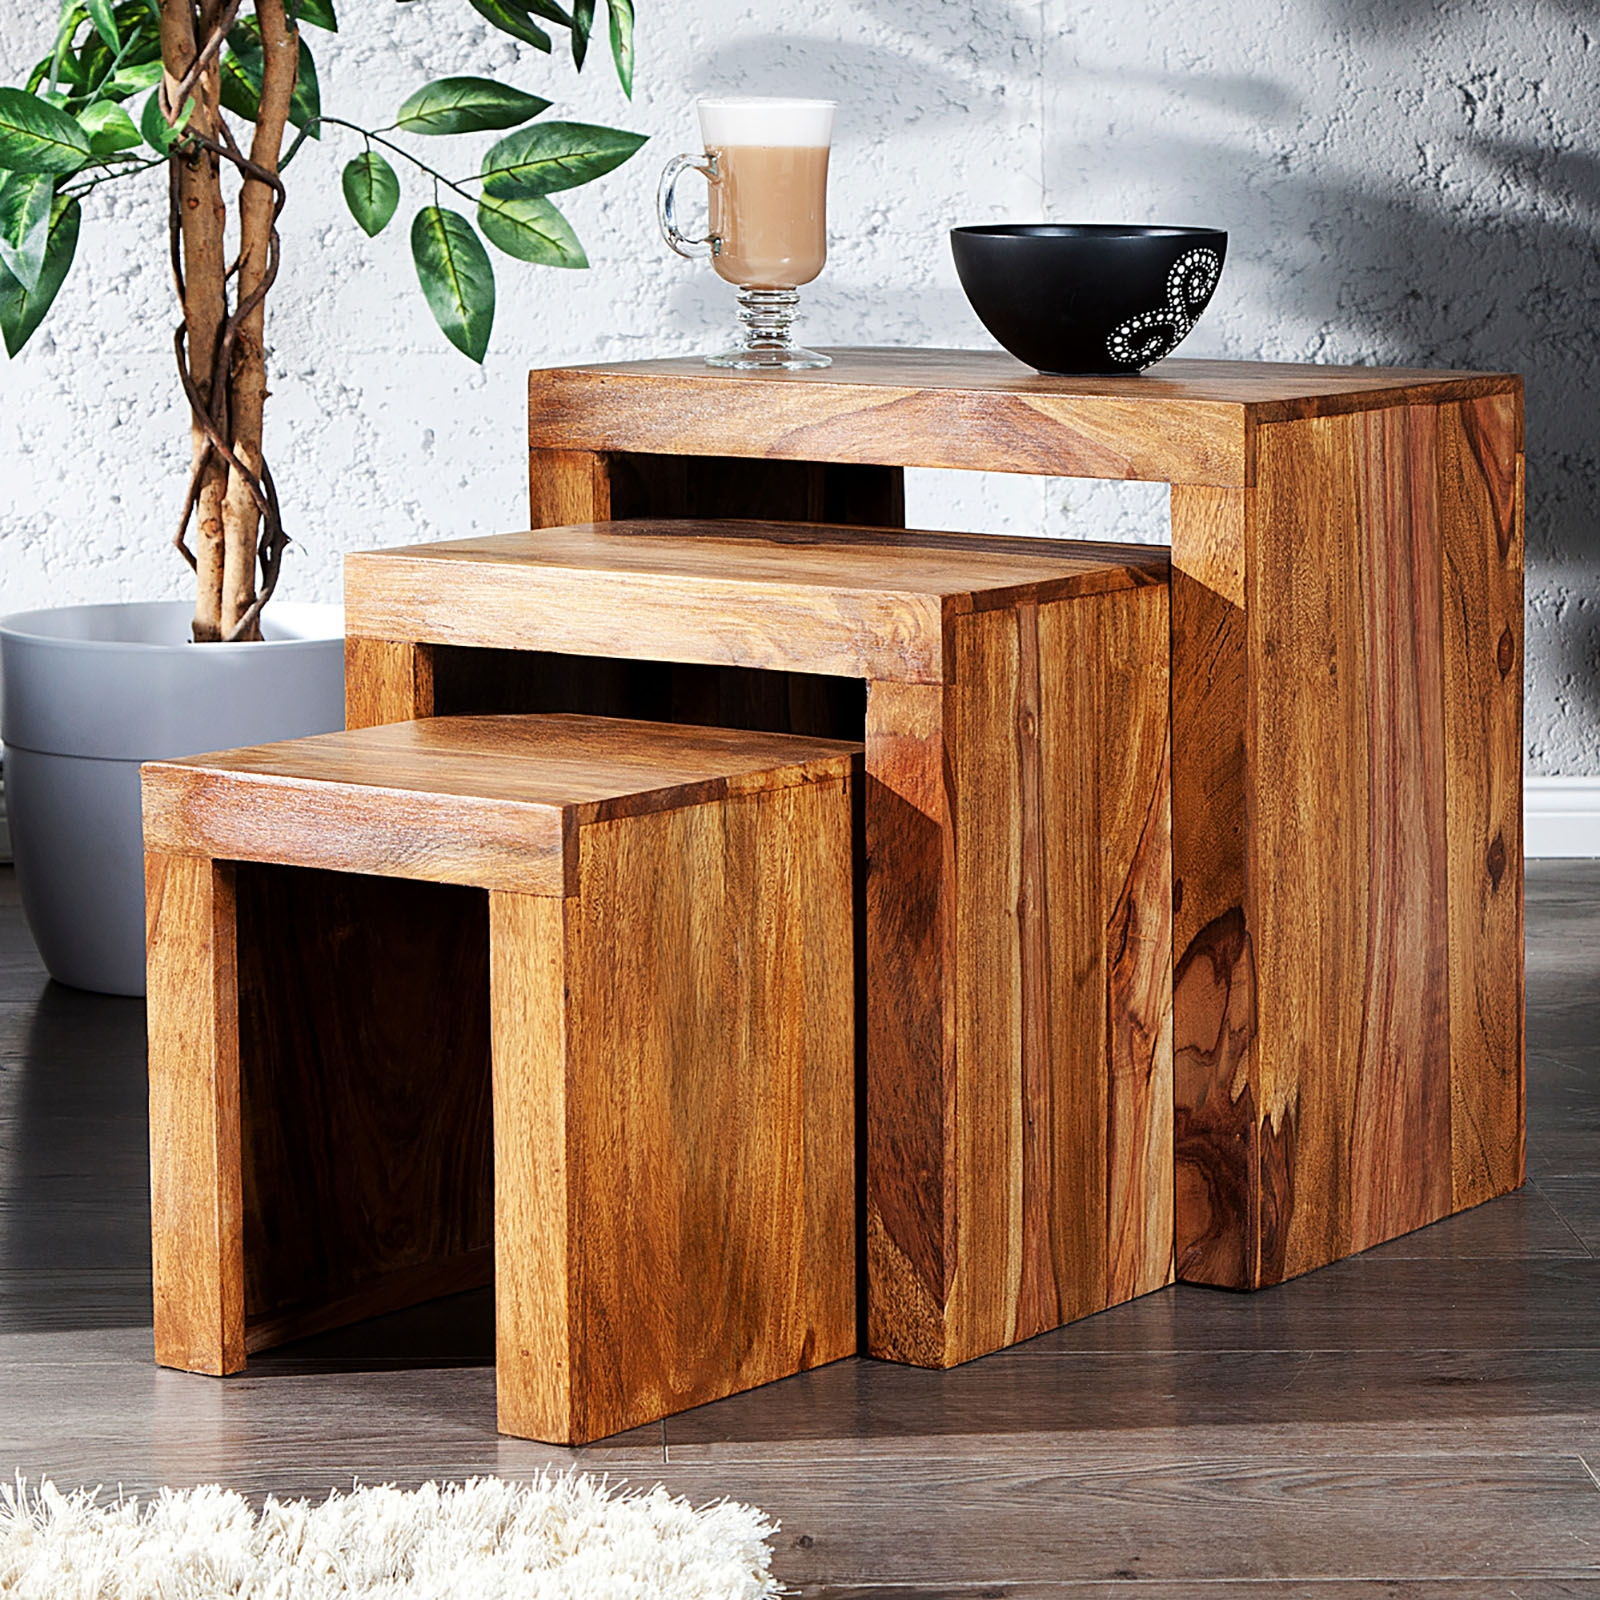 rustikales tischset sheesham beistelltisch aus massivem shesham holz 3 tlg braun eur 111 00. Black Bedroom Furniture Sets. Home Design Ideas